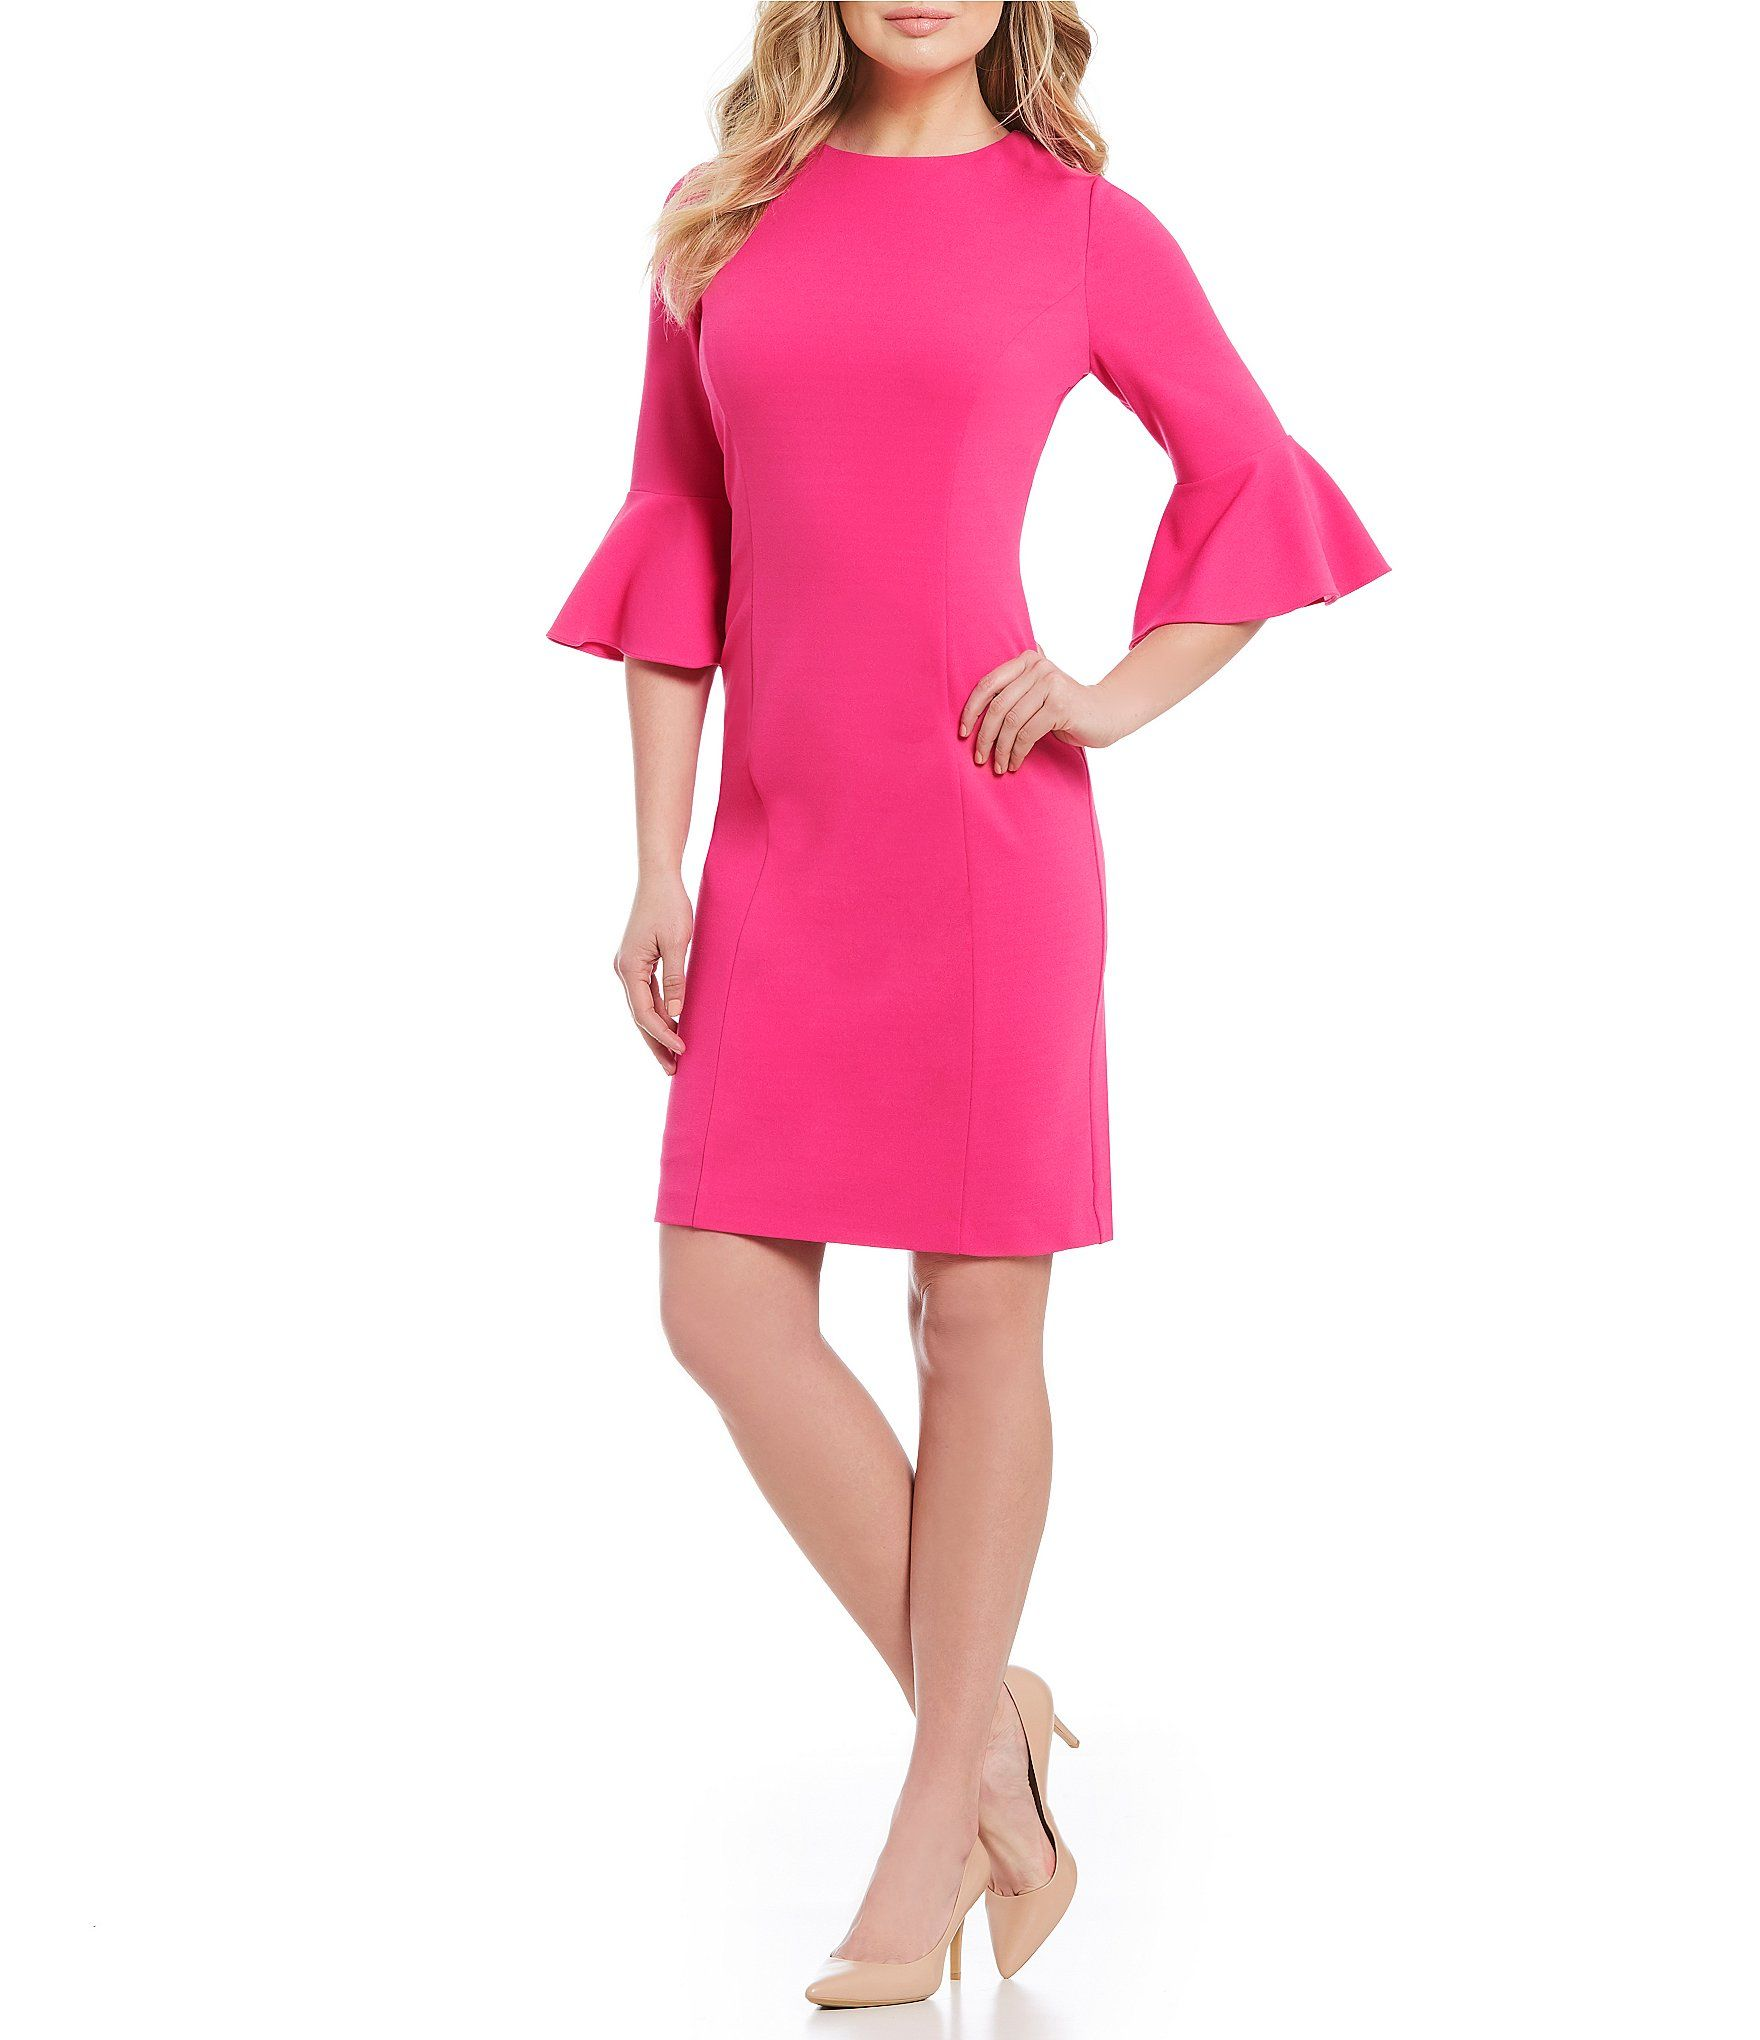 0dc3294ab71 Preston and York Robyn Sheath Dress with Bell Sleeves  Dillards ...